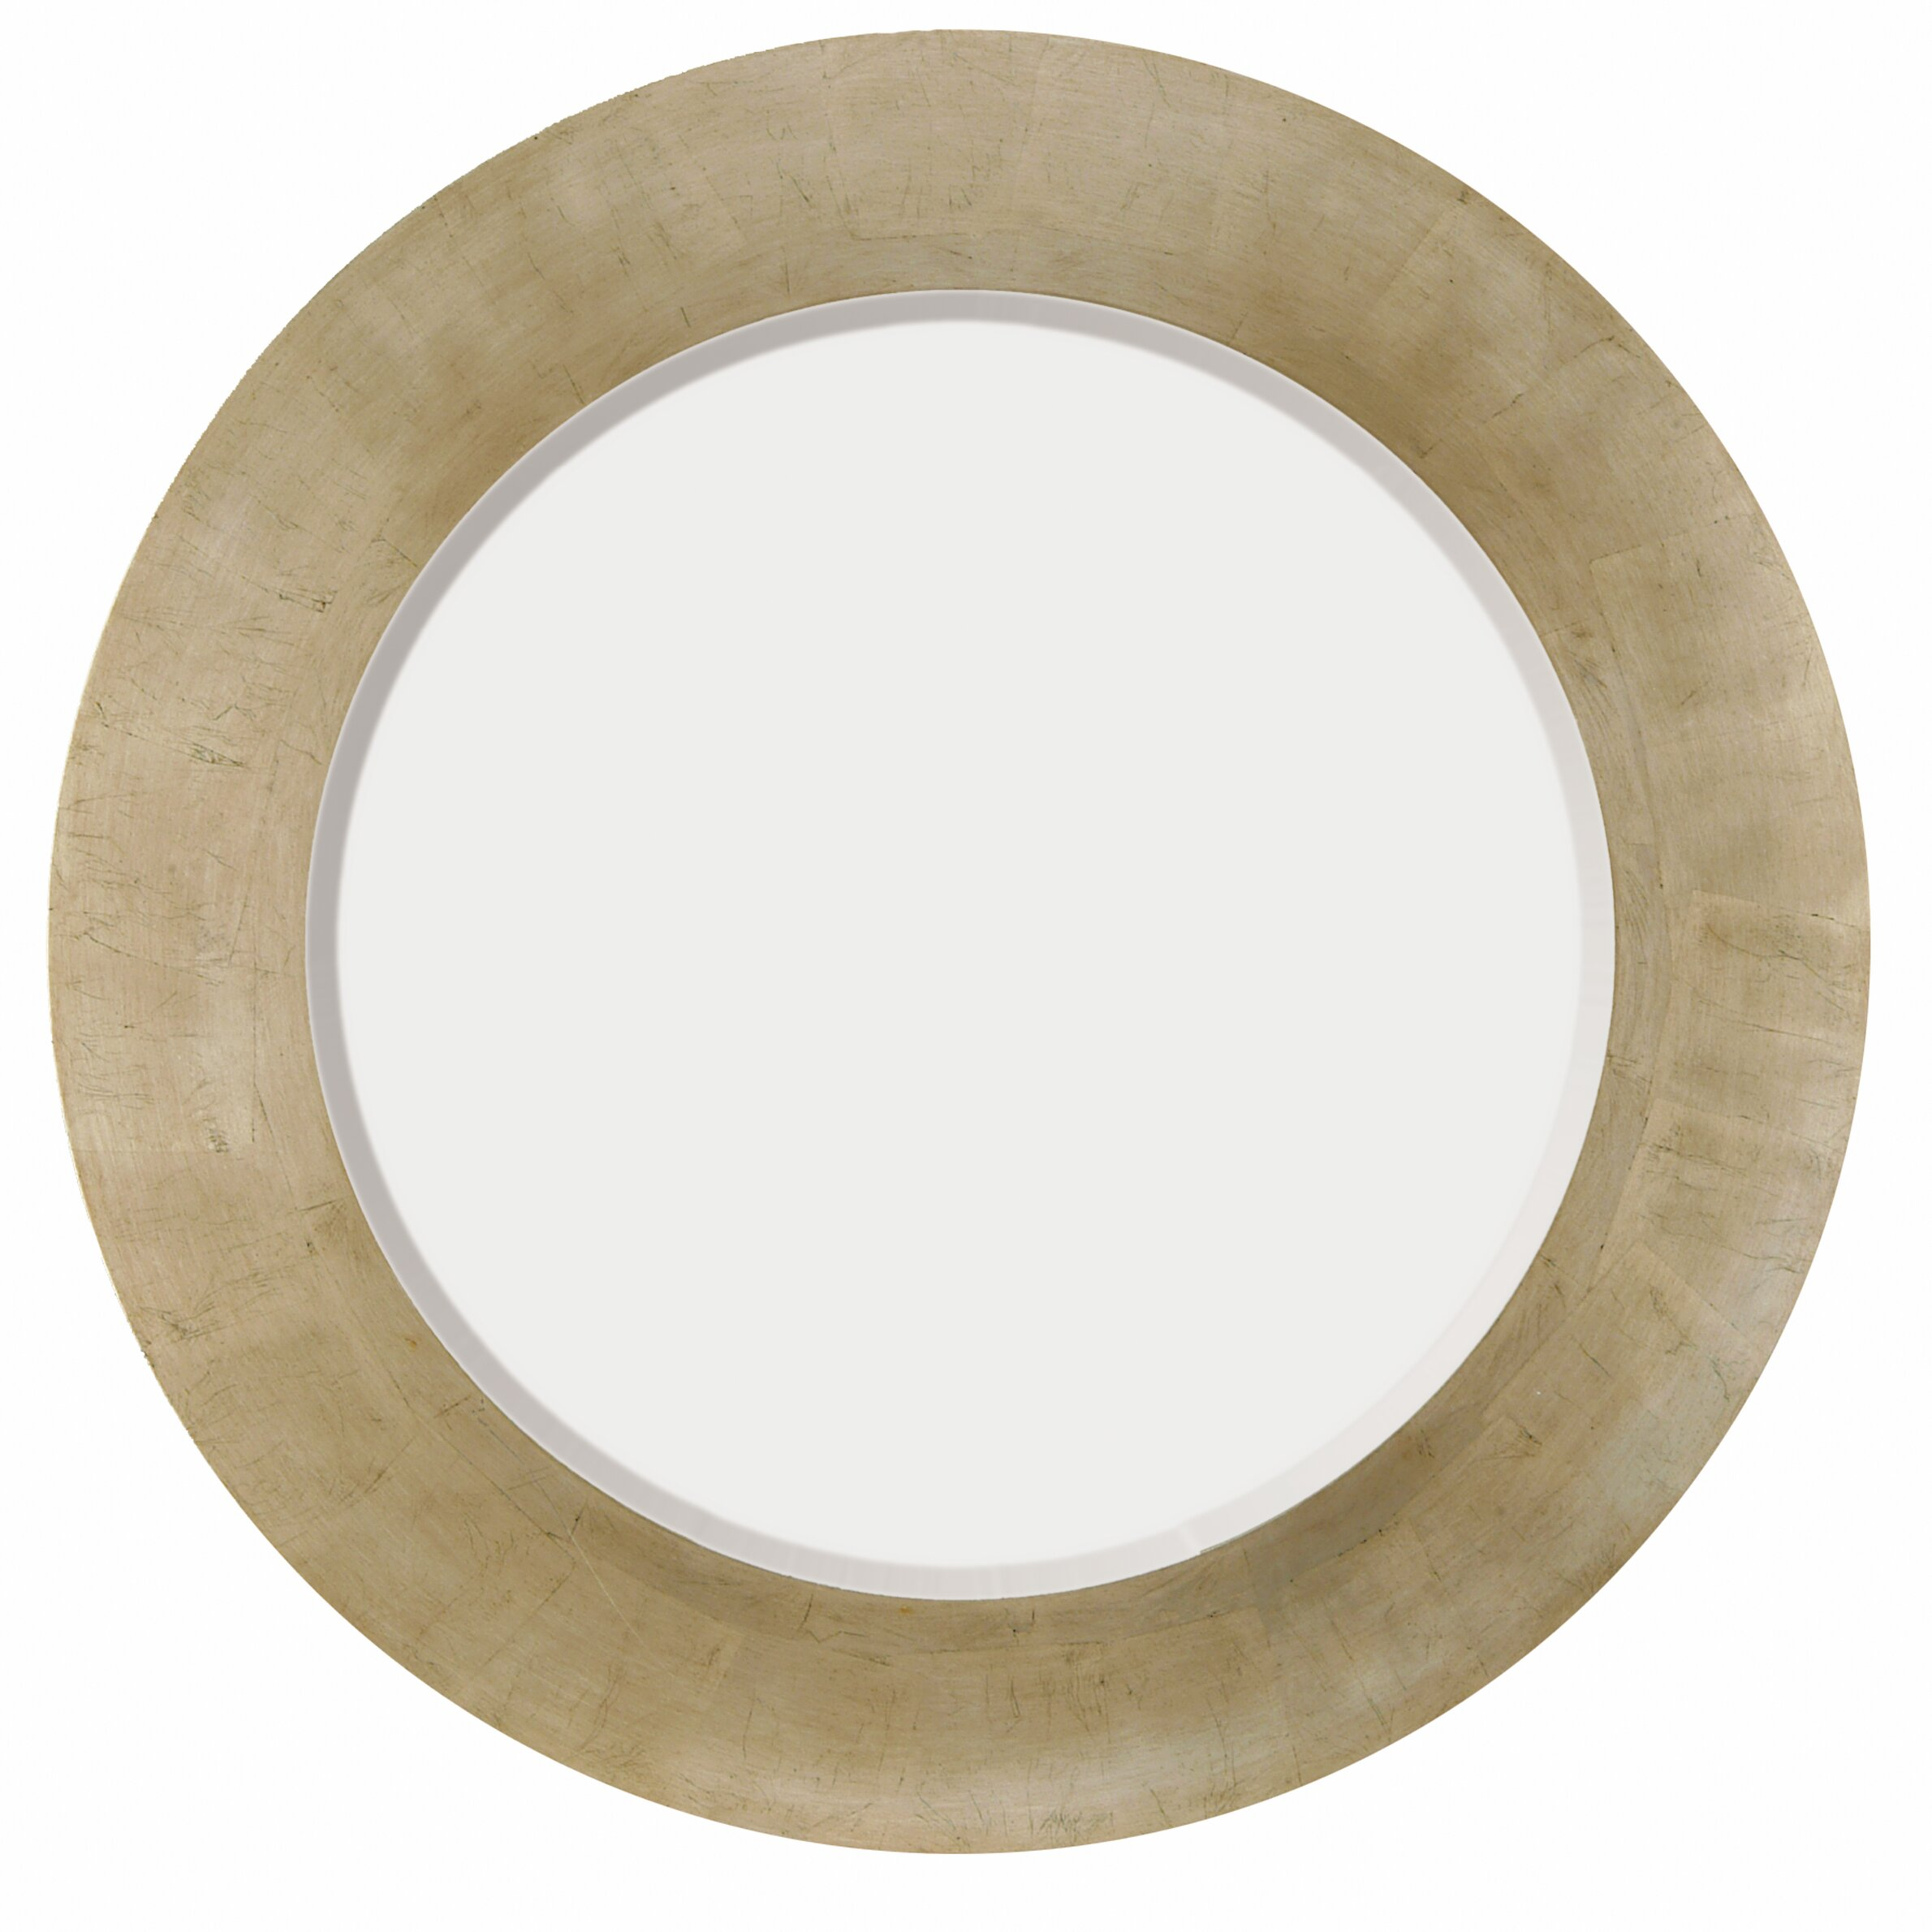 Majestic Mirror Simple Round Beveled Glass Framed Wall